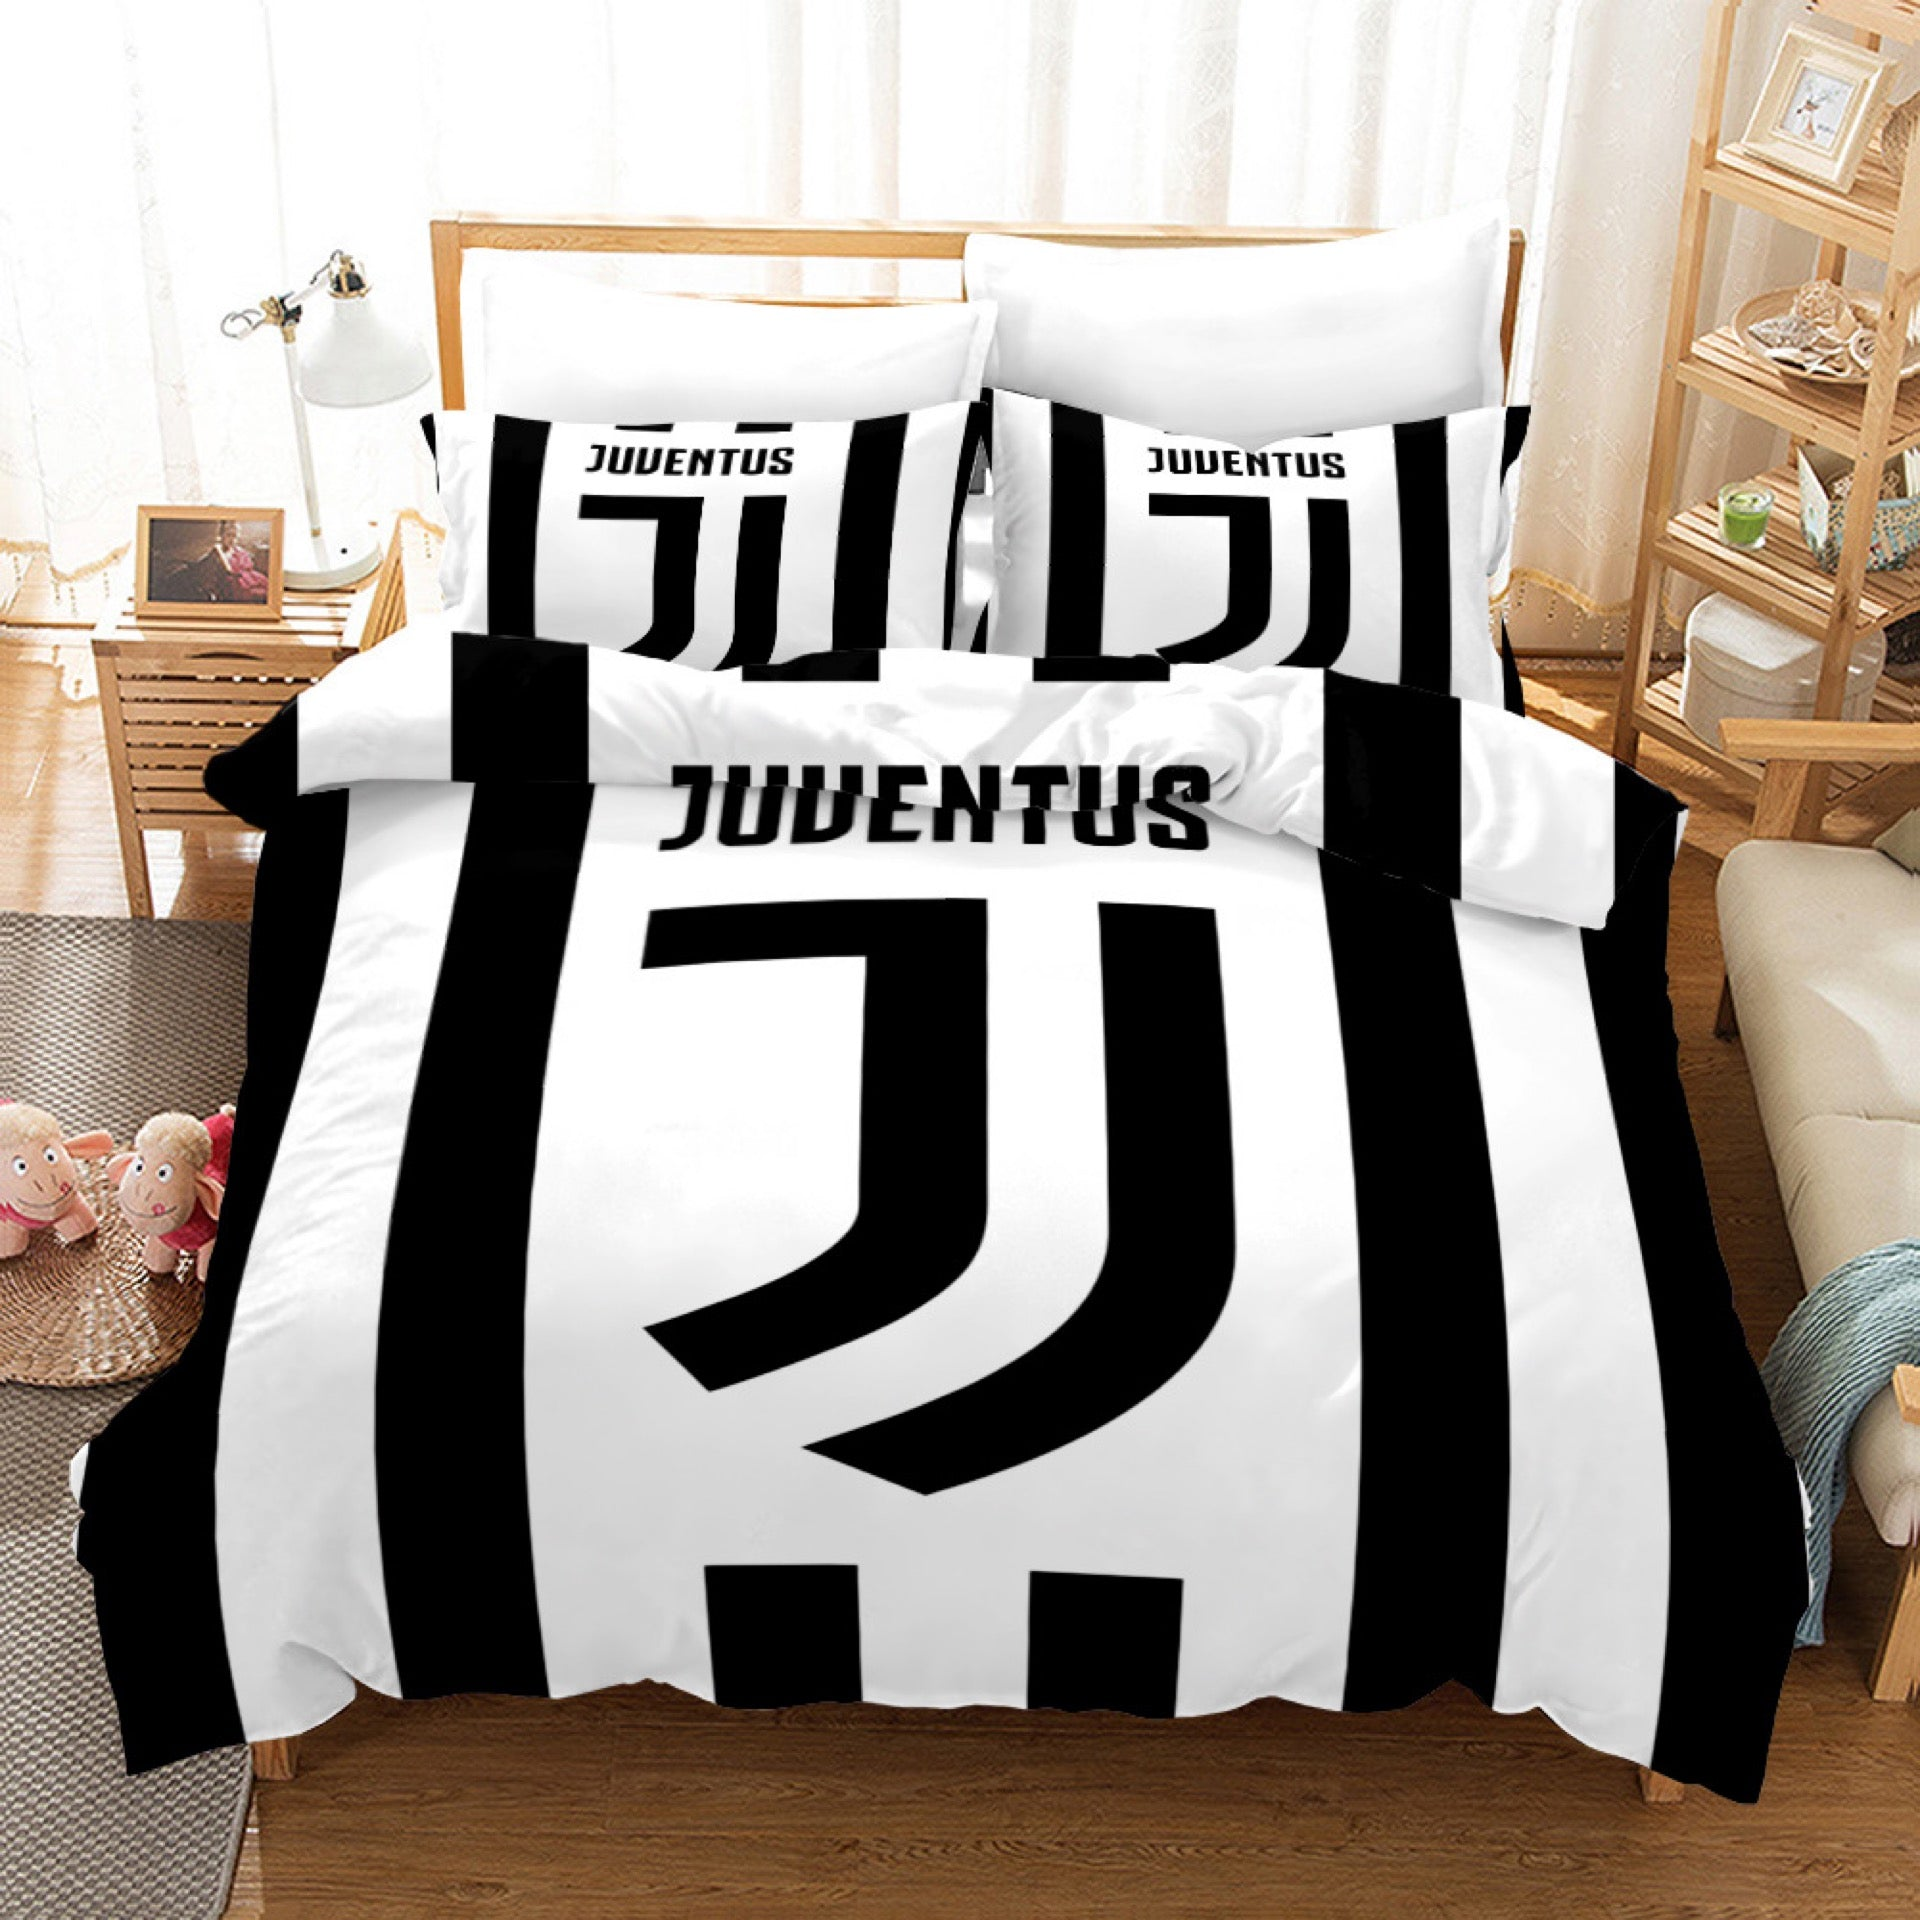 Juventus Cristiano Ronaldo Football Club 11 Duvet Cover Quilt Cover P Bedding Picky